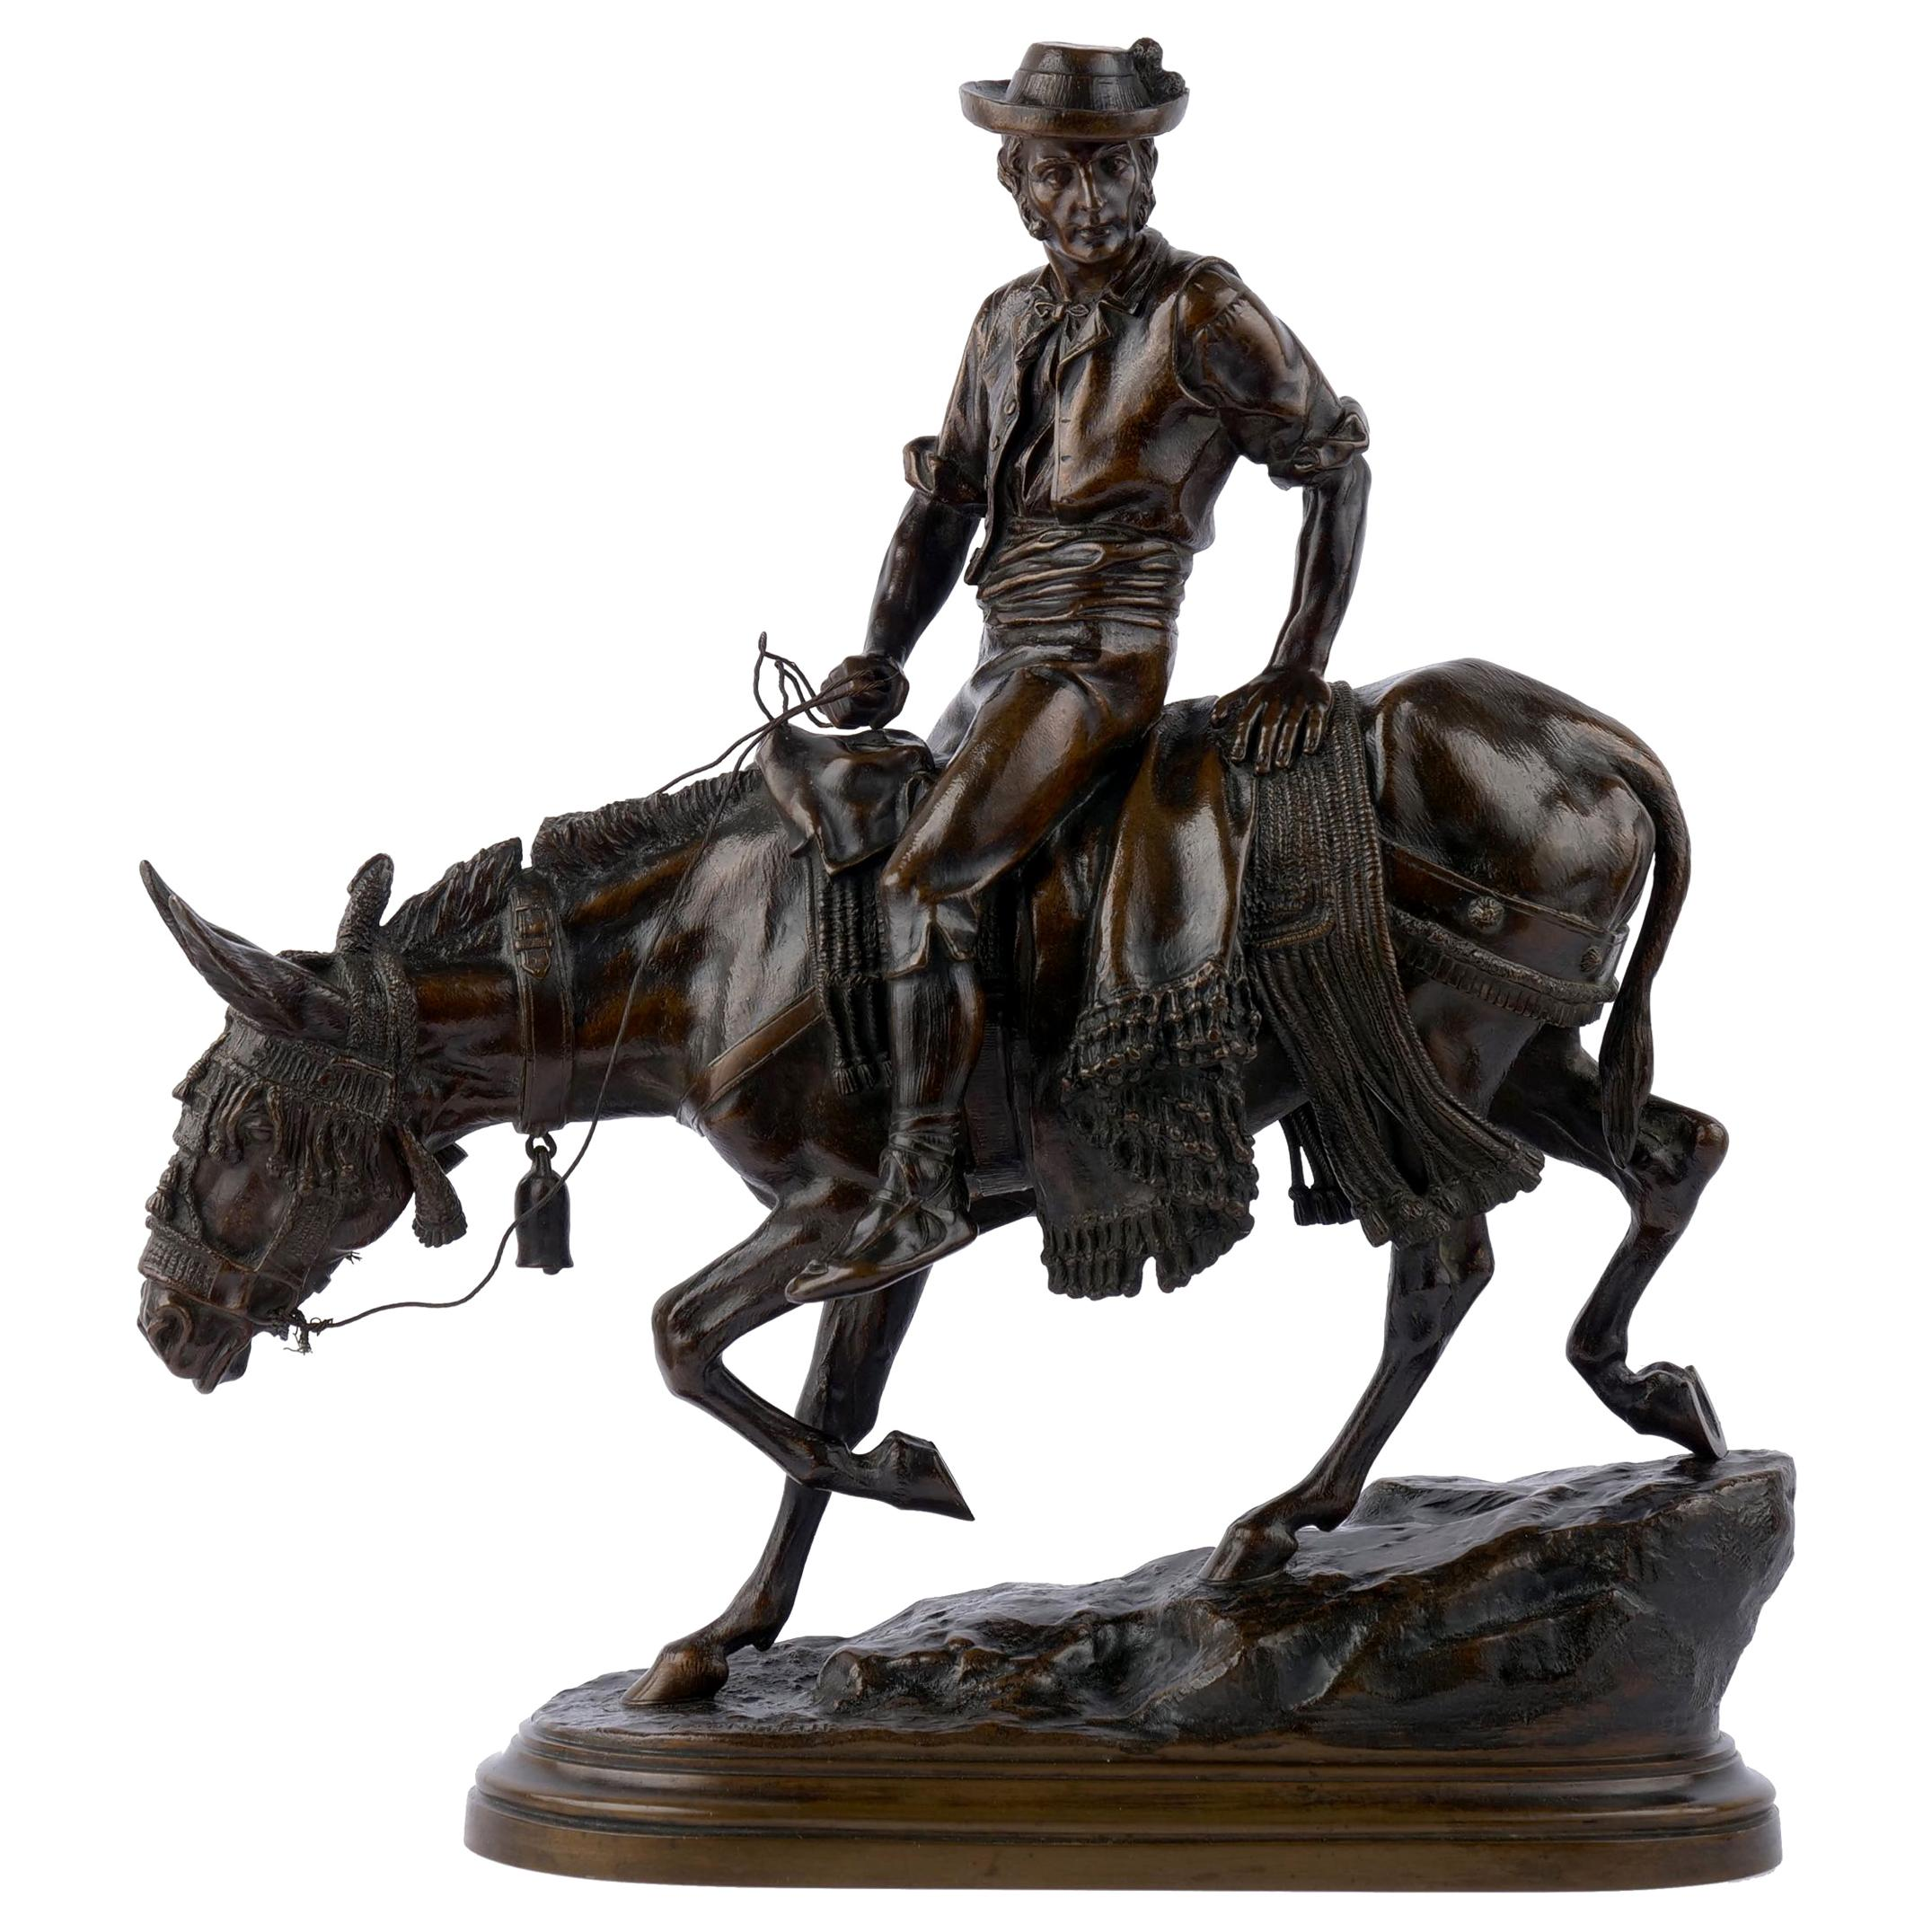 19th Century Bronze Sculpture of a Spanish Rider by Isidore Bonheur